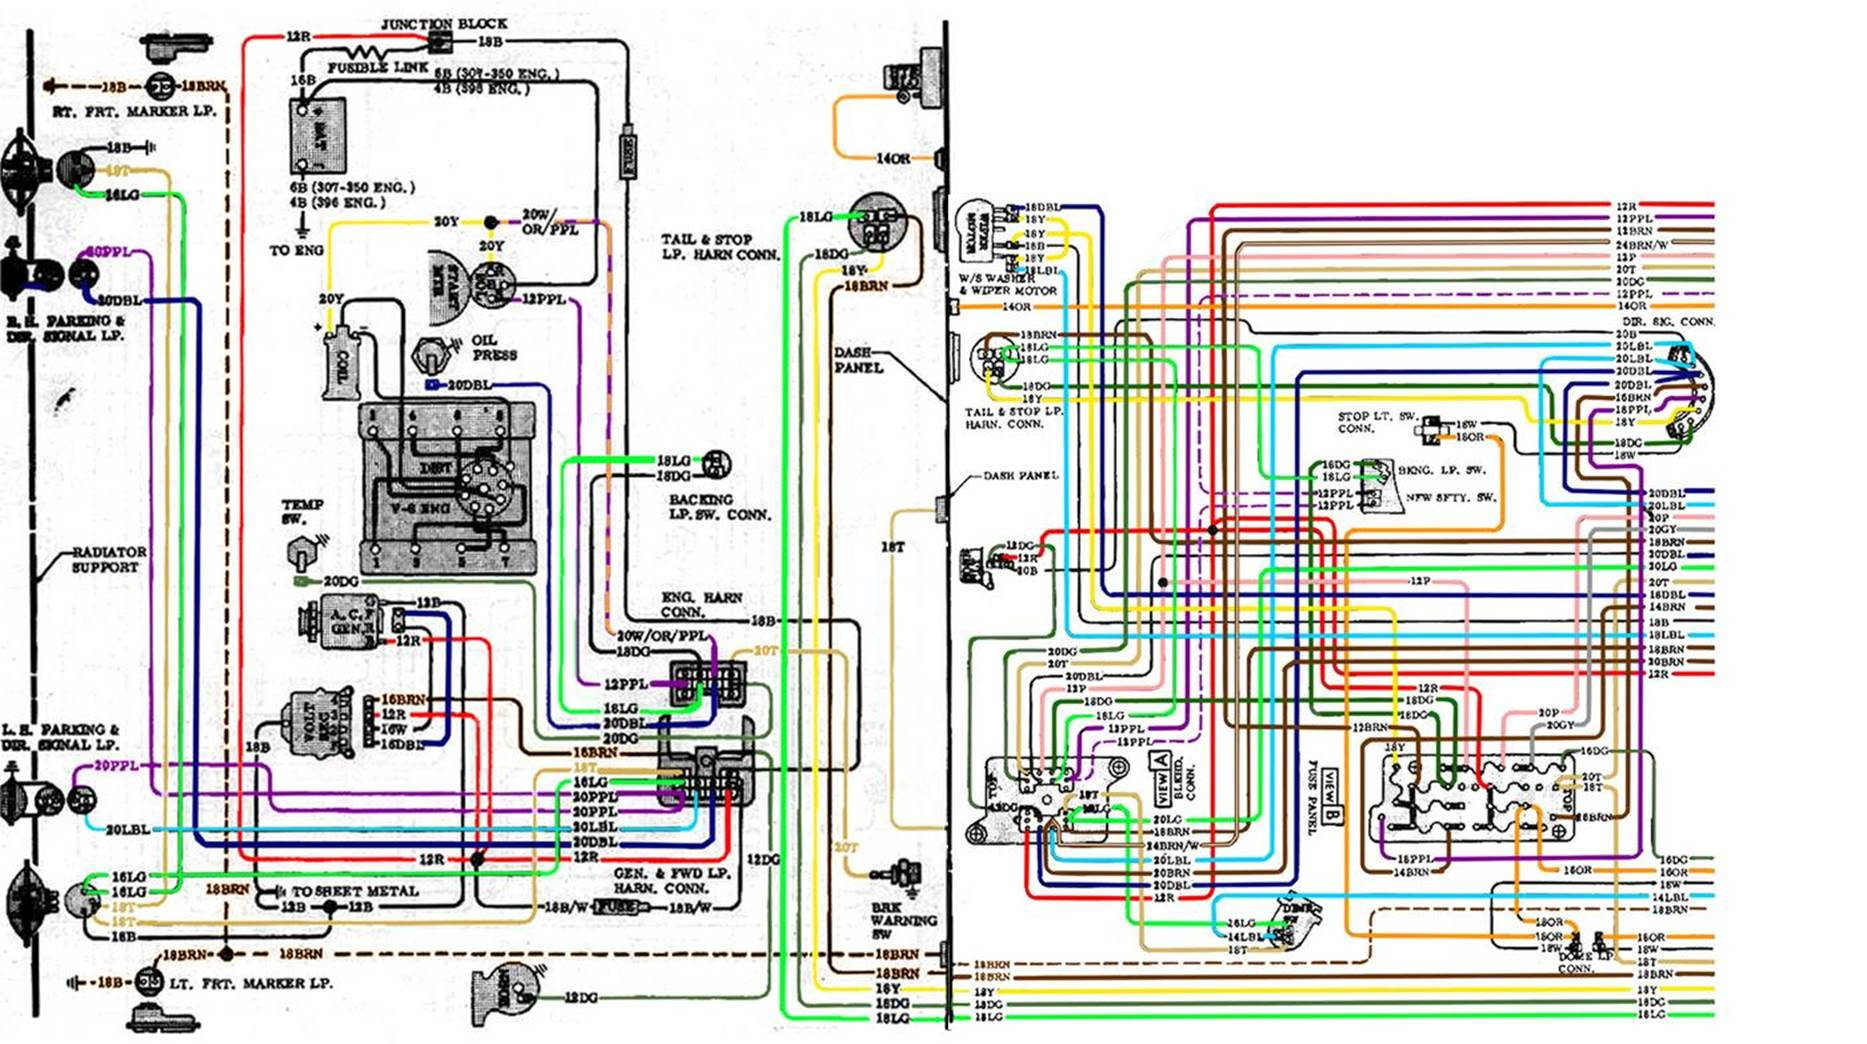 66 Chevelle Wiring Diagram Malibu Starter Wire | Wiring Liry on antenna diagram, voltage regulator diagram, fan clutch diagram, horn diagram, belt tensioner diagram, ac condenser diagram, torsion bar diagram, headlight diagram, wheel diagram, clutch master cylinder diagram, exhaust manifold diagram, blower motor diagram, cylinder head diagram, crankshaft diagram, ecm diagram, oil pump diagram, alternator diagram, brake master cylinder diagram, ignition switch diagram, front brake diagram,